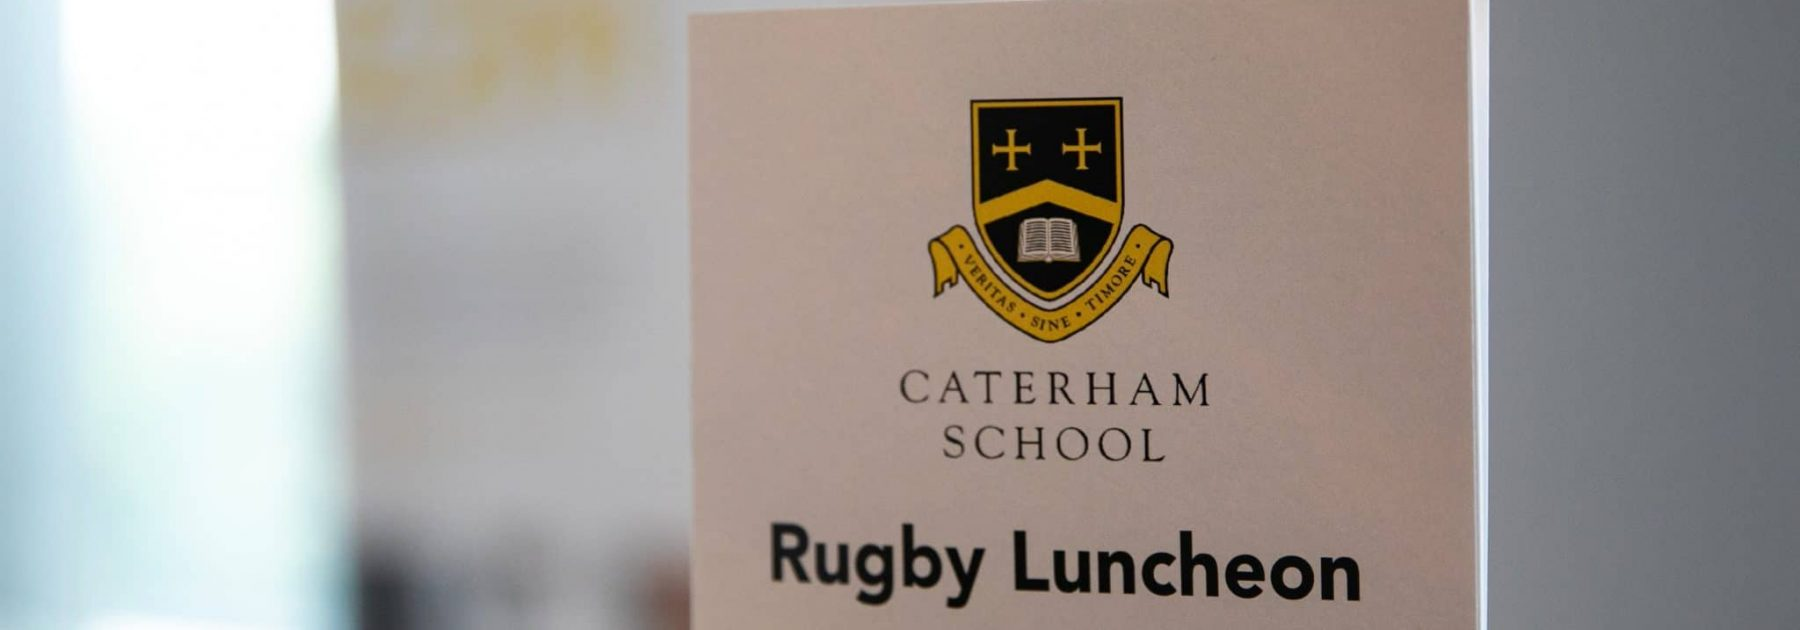 Rugby Luncheon 2021